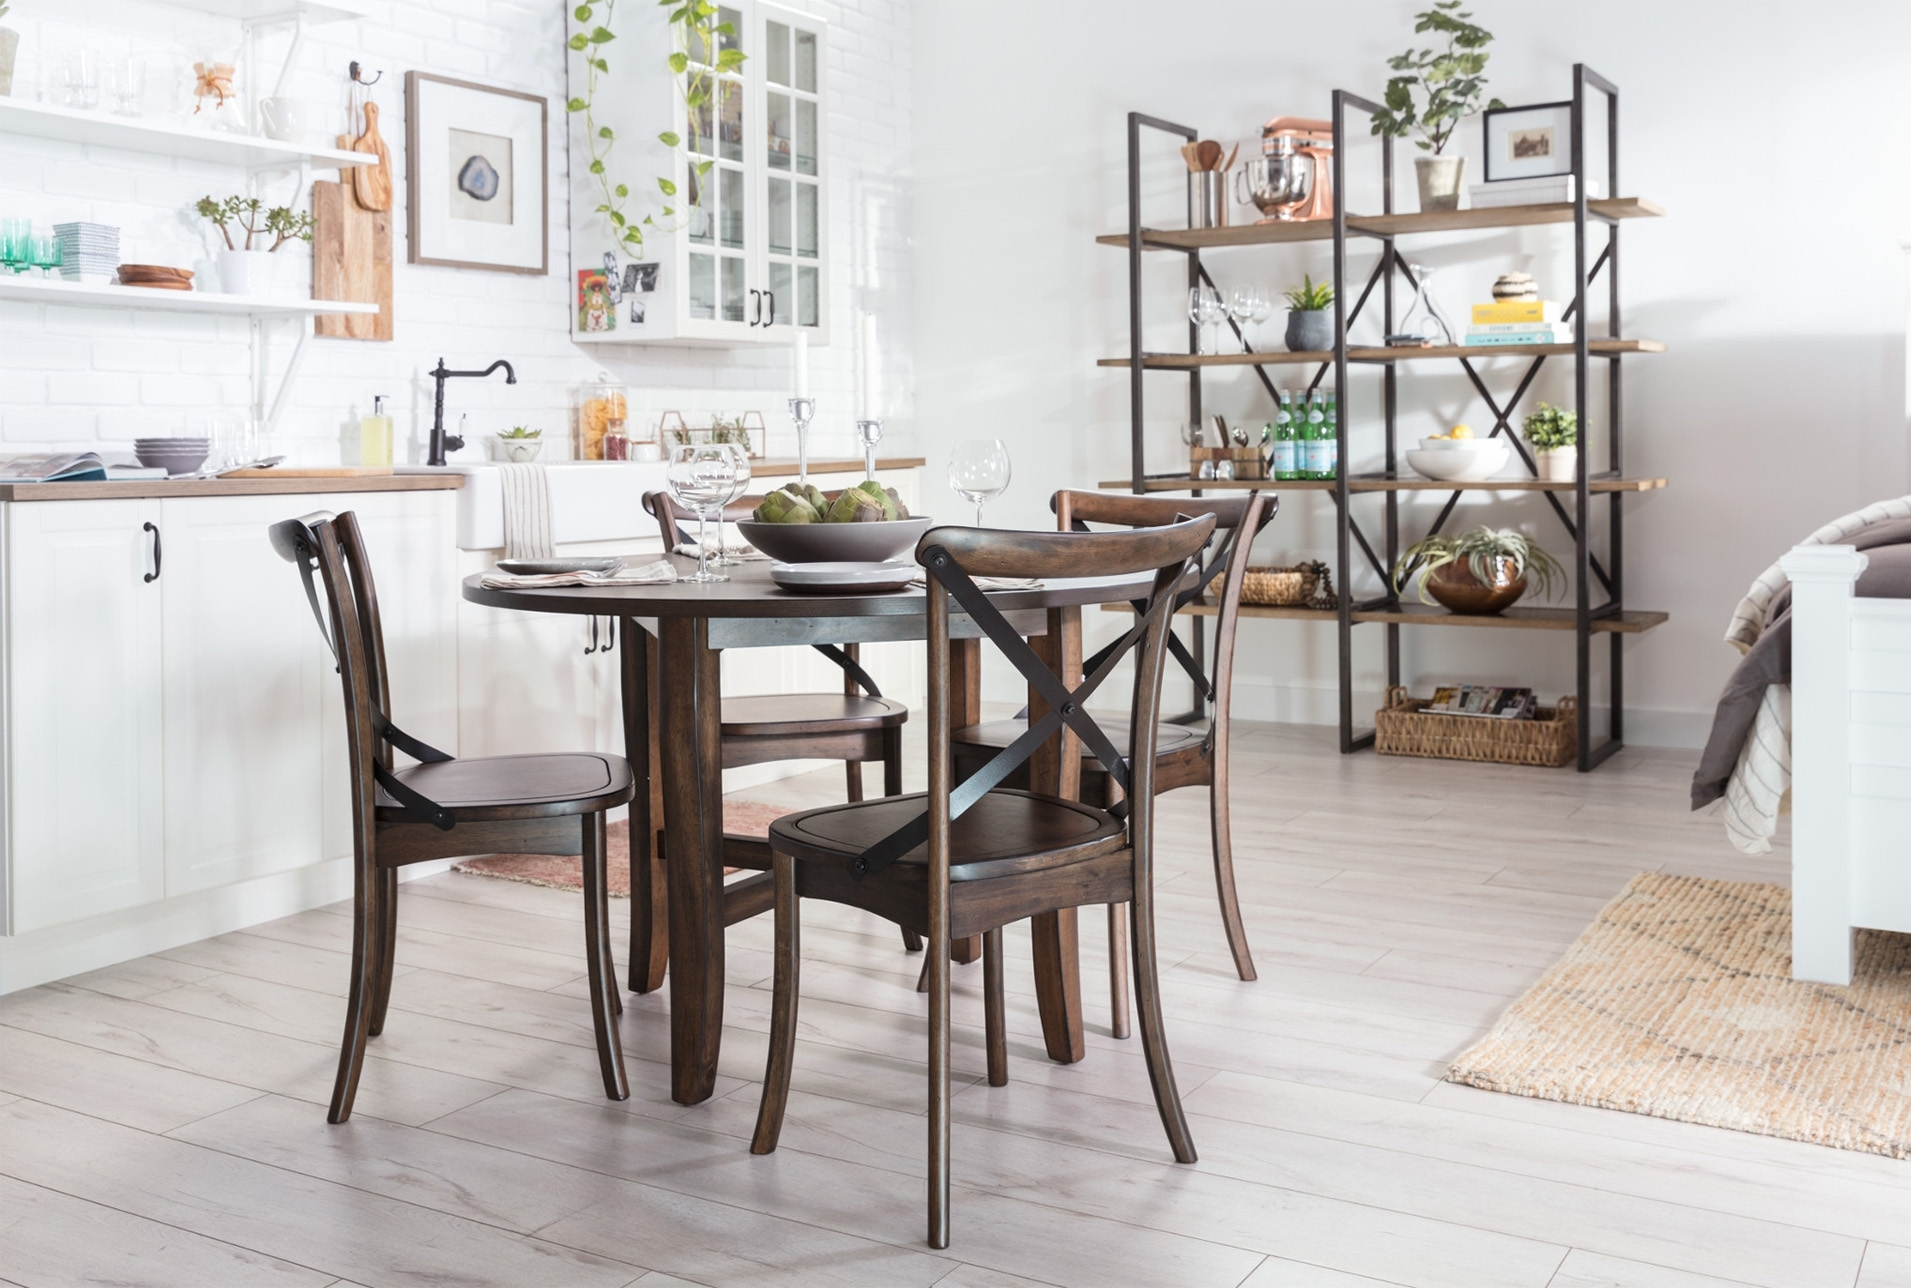 Grady 5 Piece Round Dining Set | Round Dining Set, Round Dining And With Regard To Most Recently Released Grady 5 Piece Round Dining Sets (Photo 3 of 20)